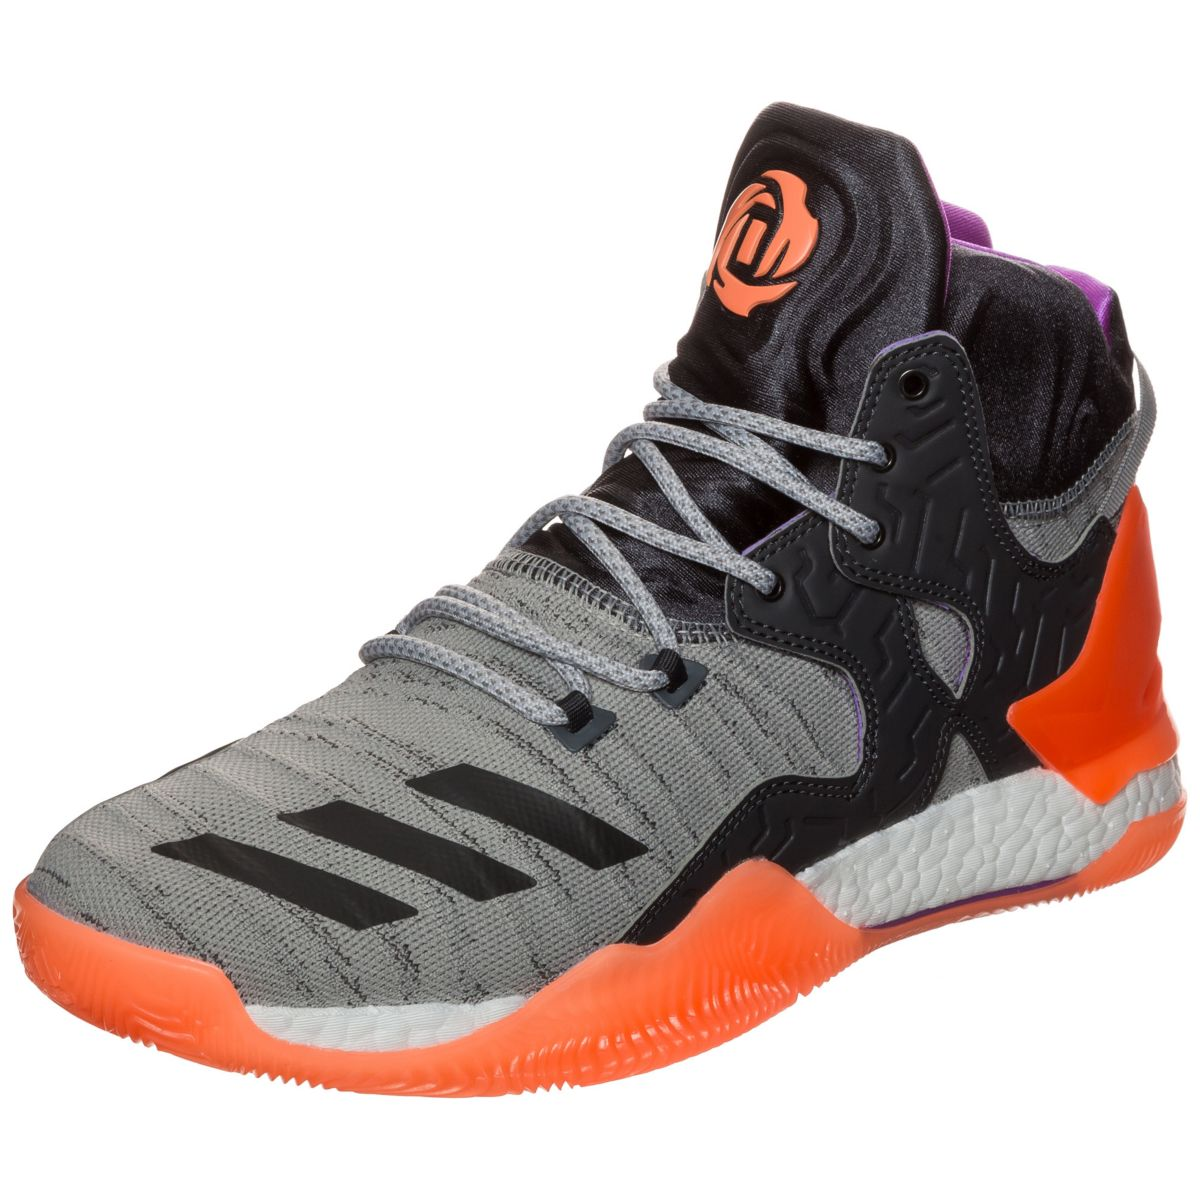 Adidas D Primeknit Performance 7 Basketballschuh Herren Rose fb76gYy